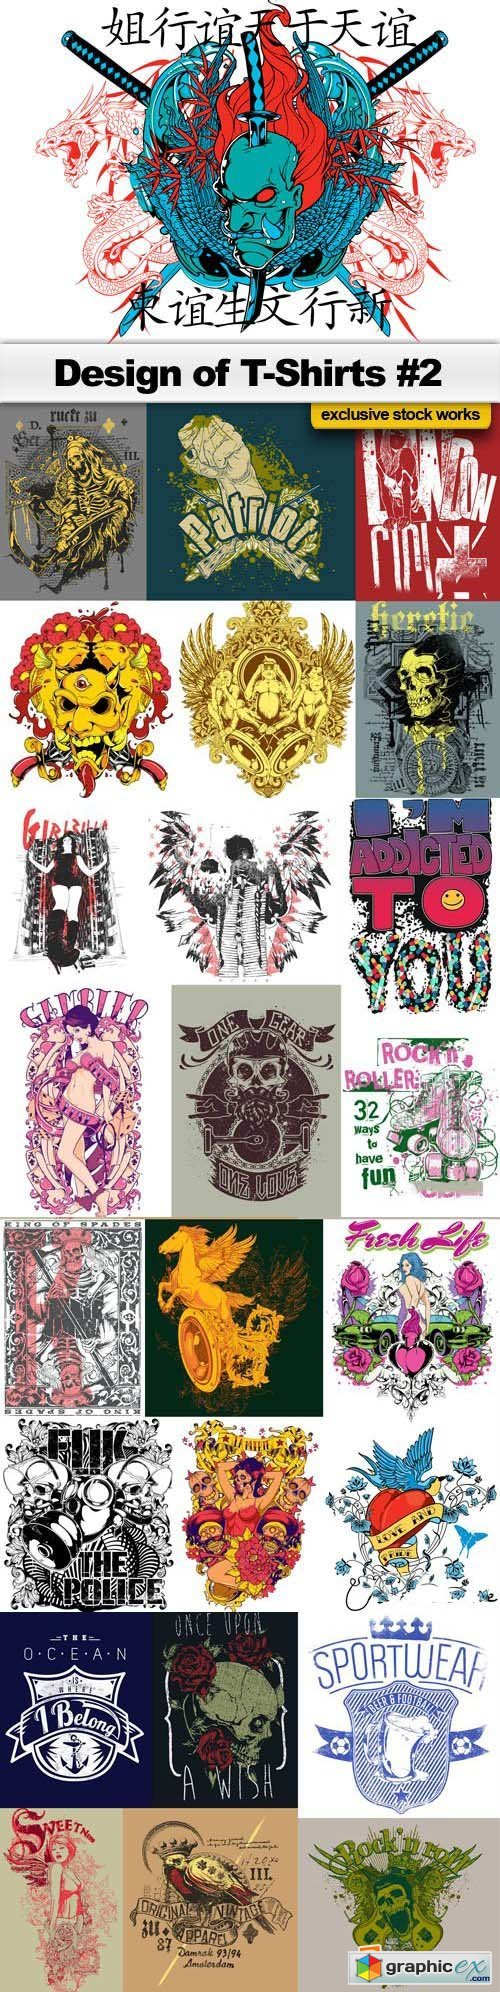 Design of t shirts 2 25xeps